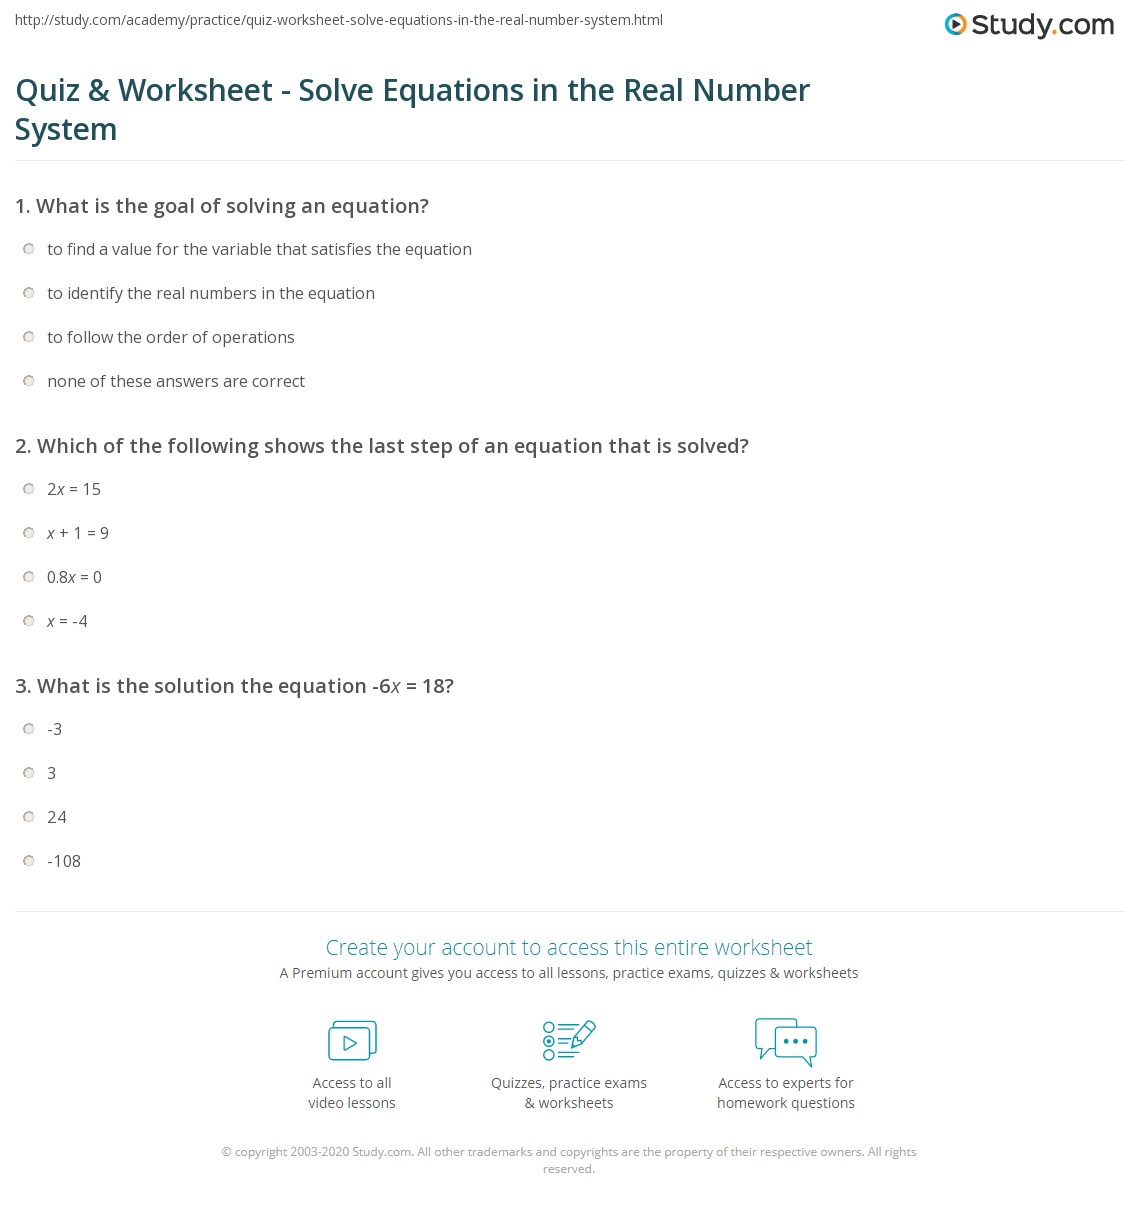 Worksheet real number system worksheet grass fedjp worksheet worksheet real number system worksheet quiz worksheet solve equations in the real number system print solving pooptronica Gallery